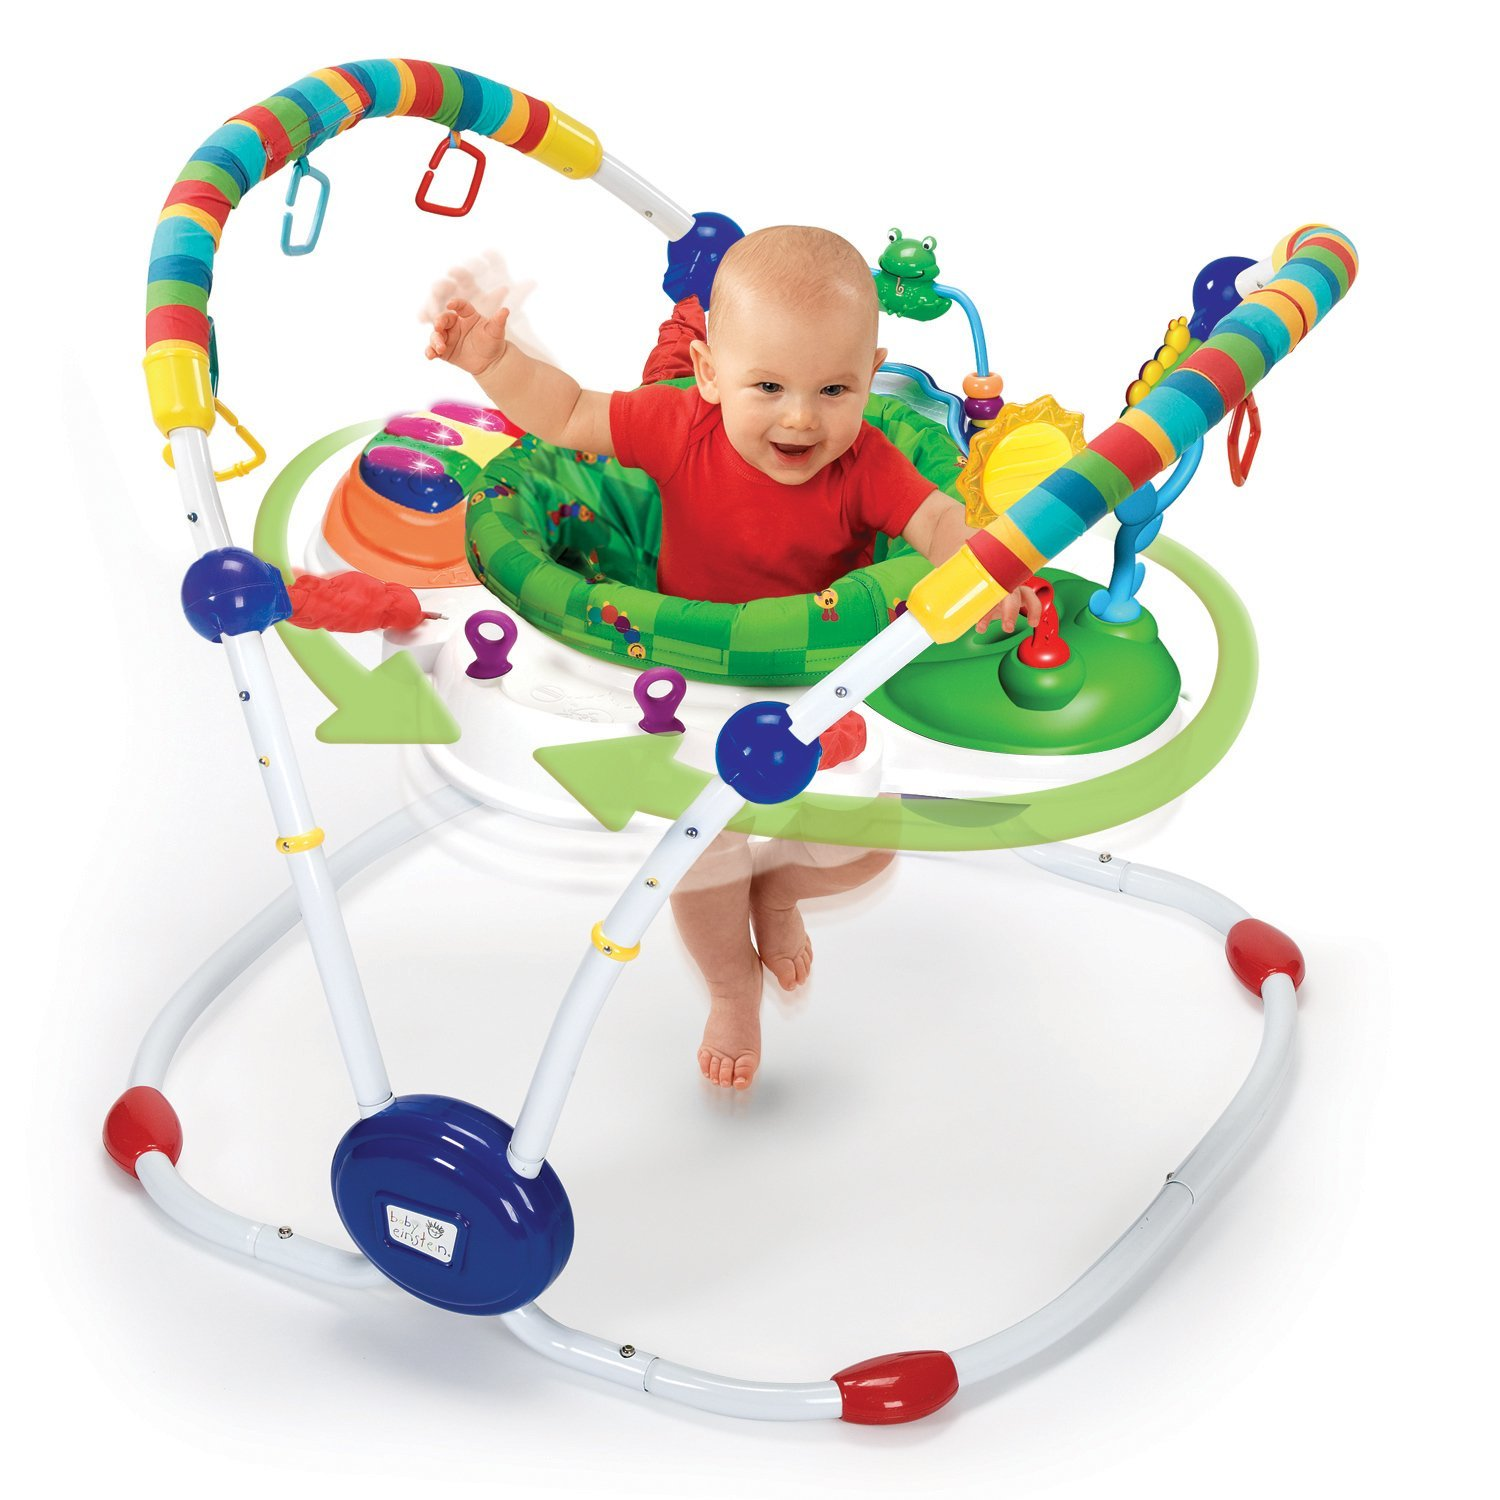 Toys For Rent Baby Einstein Musical Motion Activity Jumperoo